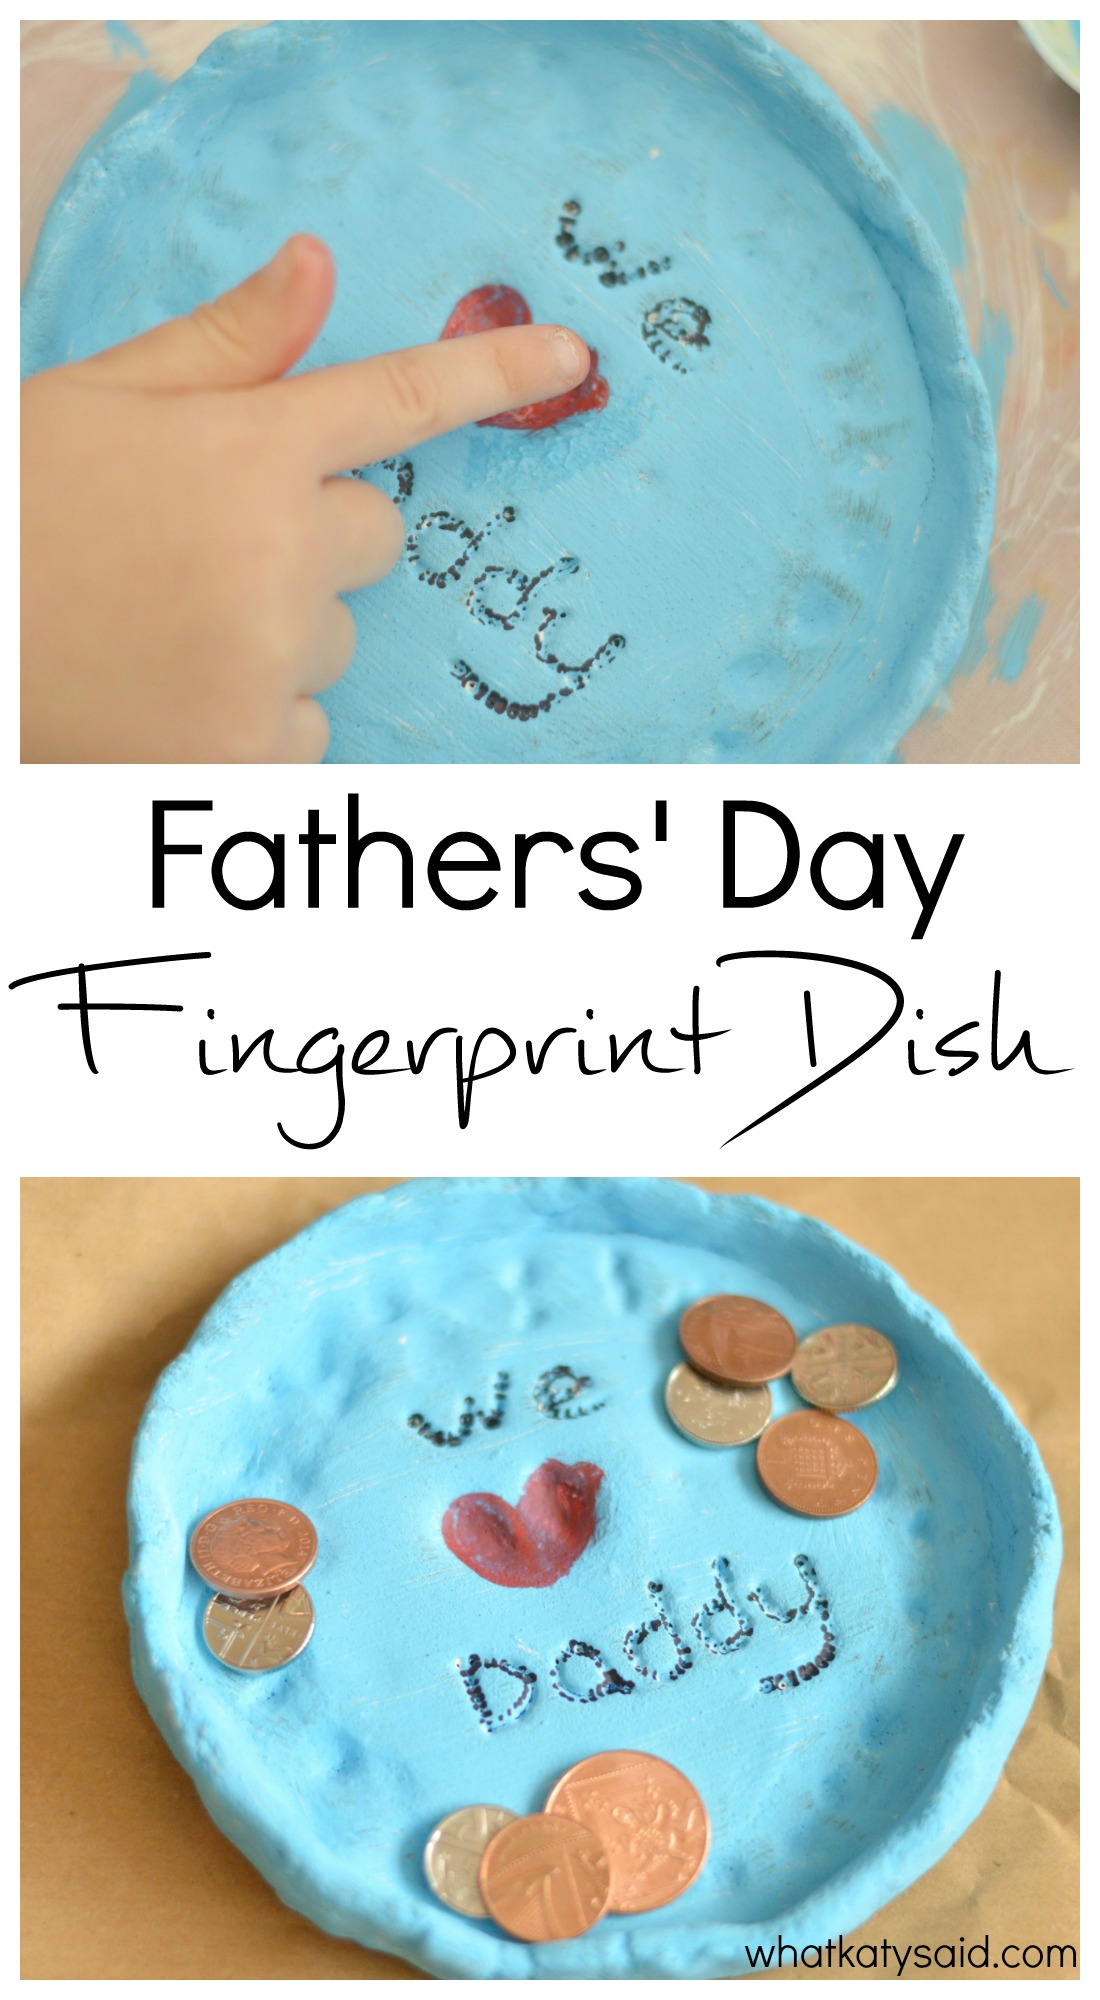 Fathers' Day Gift Idea Fingerprint dish from the kids